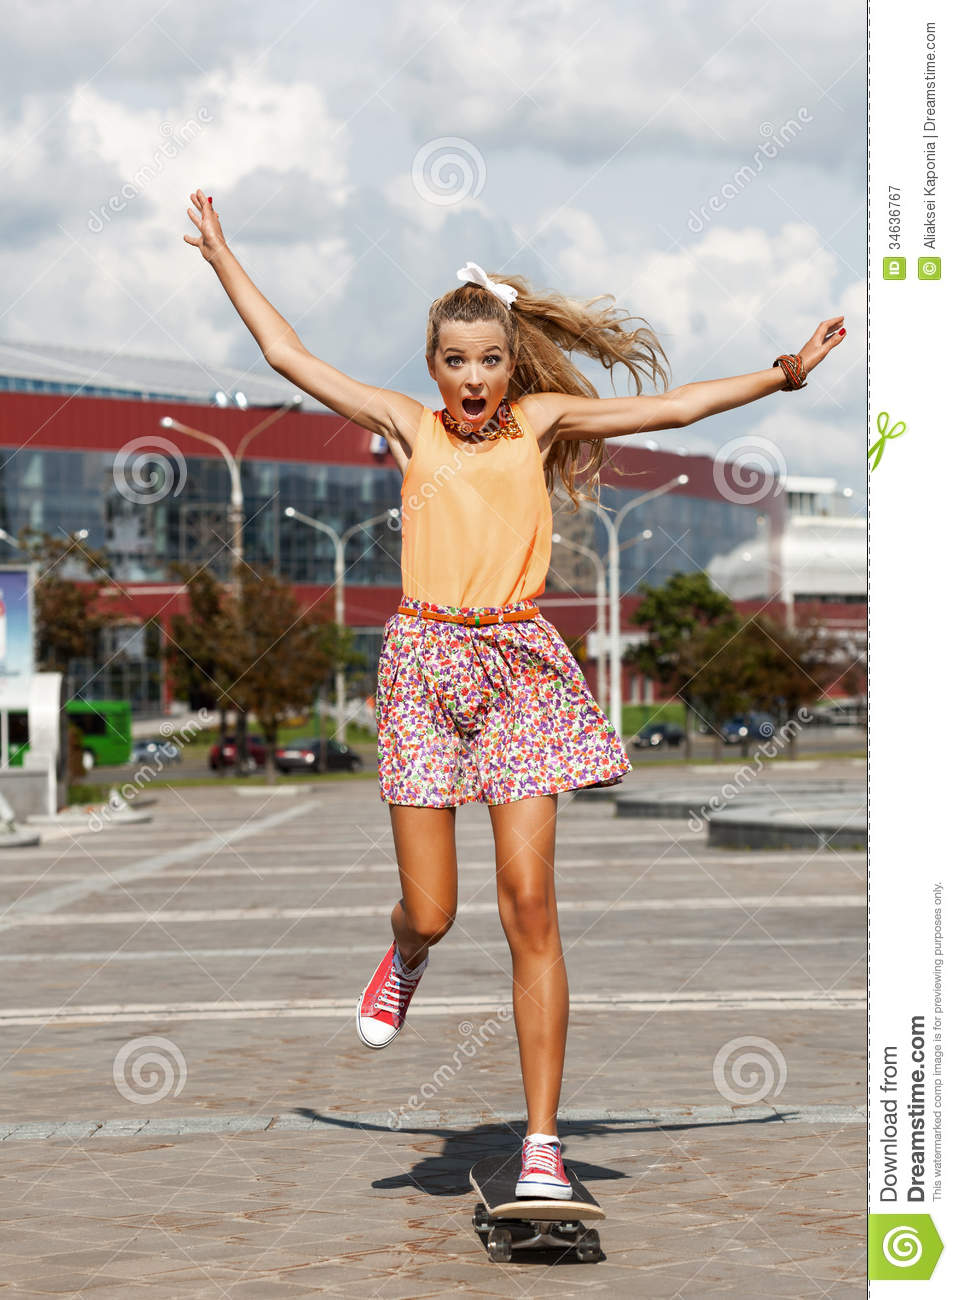 Skateboard Girl Wallpaper Woman With Skateboard Royalty Free Stock Photography